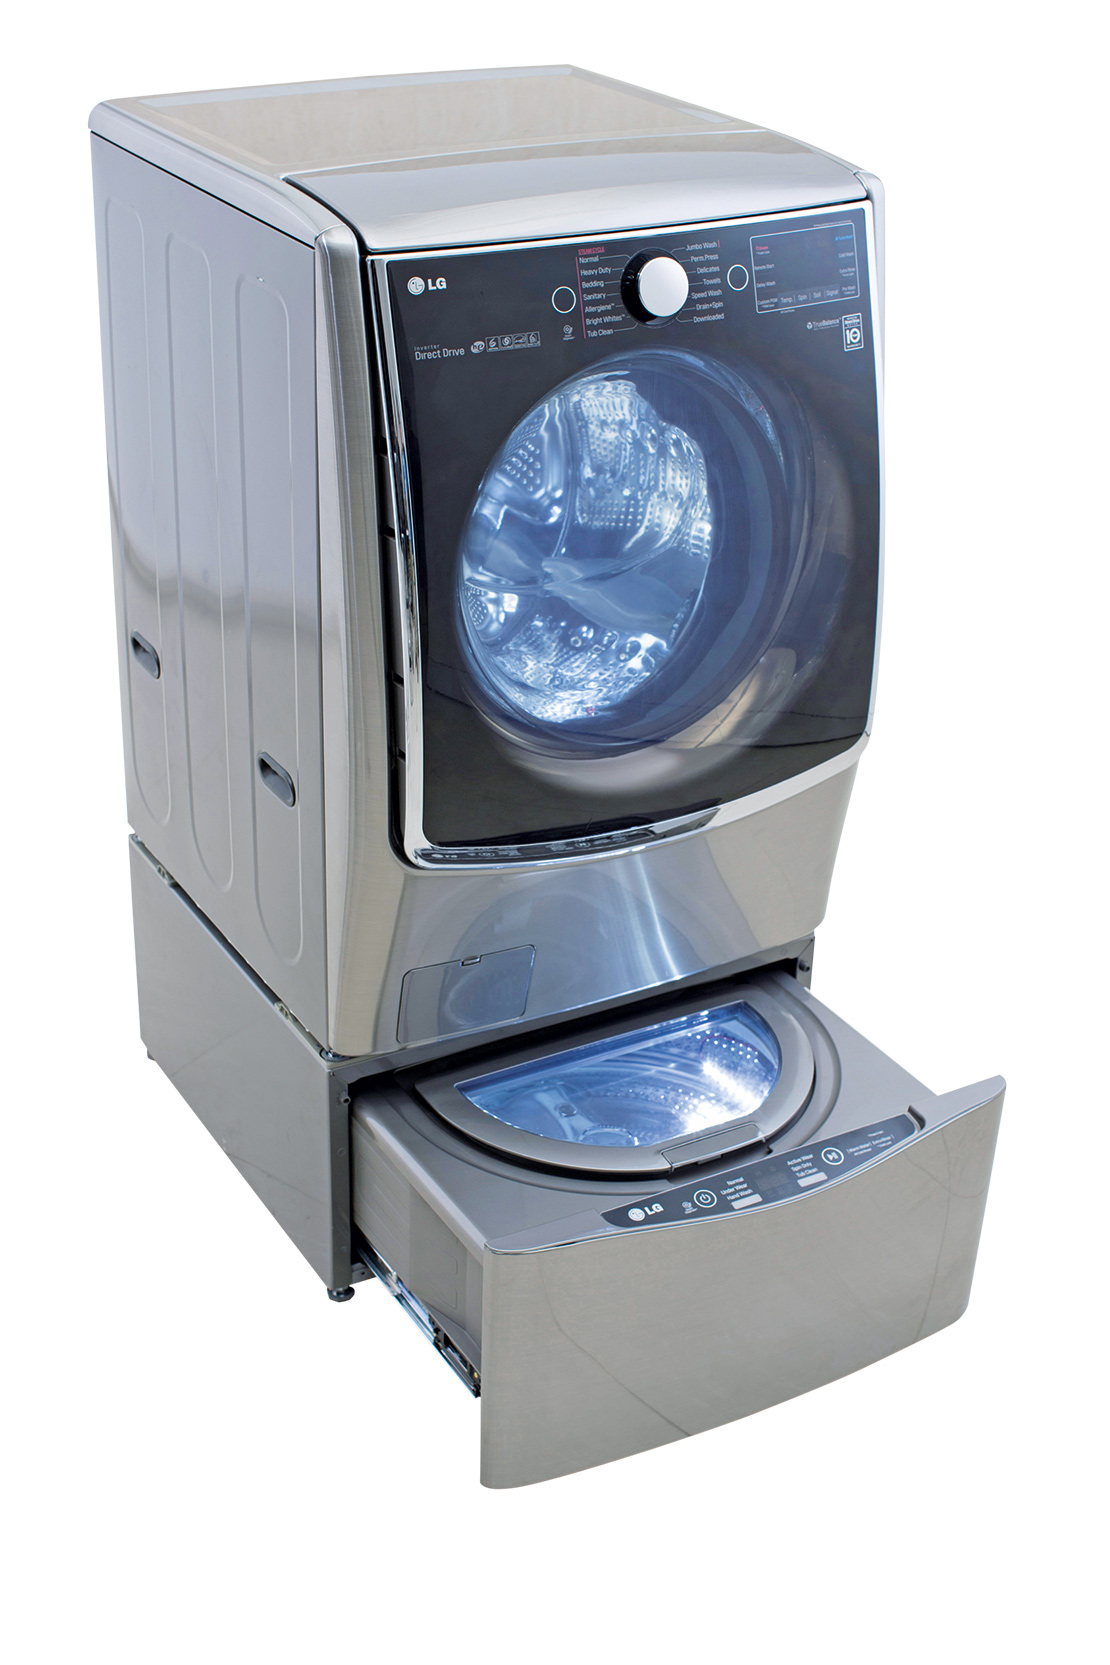 What Is The Best Washing Machine To Buy